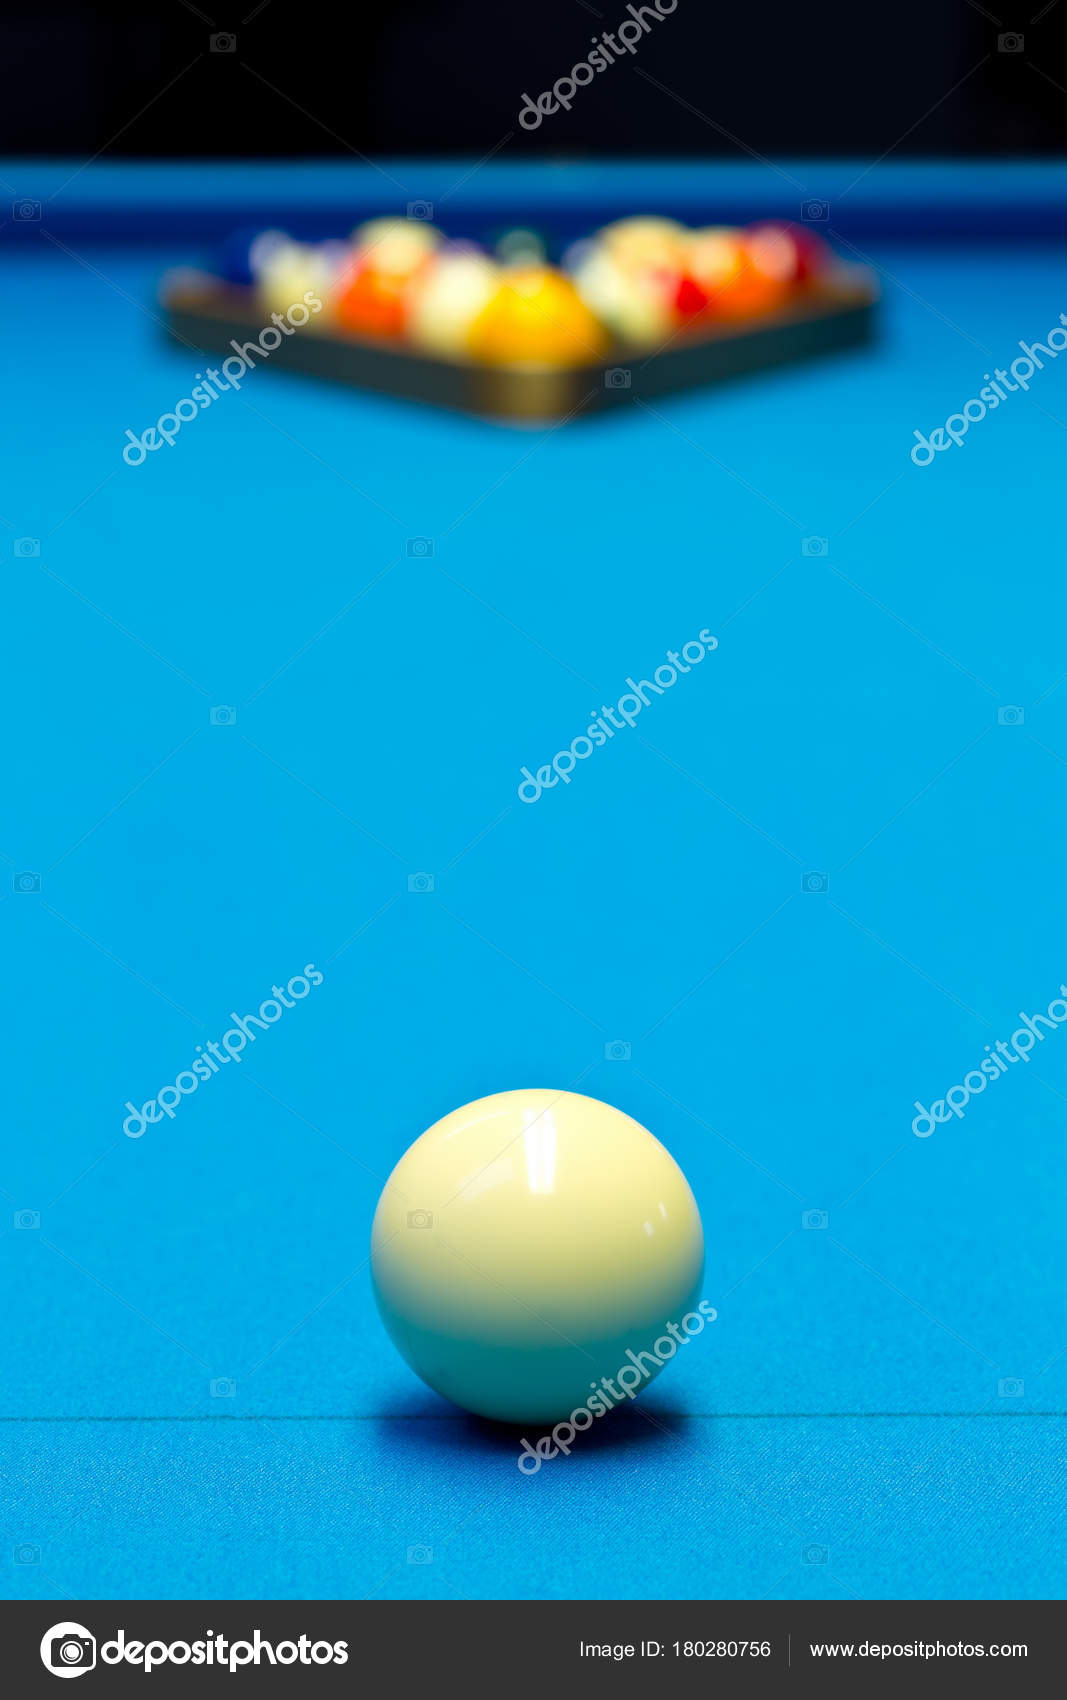 Billiard Pool Game Eight Ball Setup On Billiard Table Stock Photo - How to set up a pool table